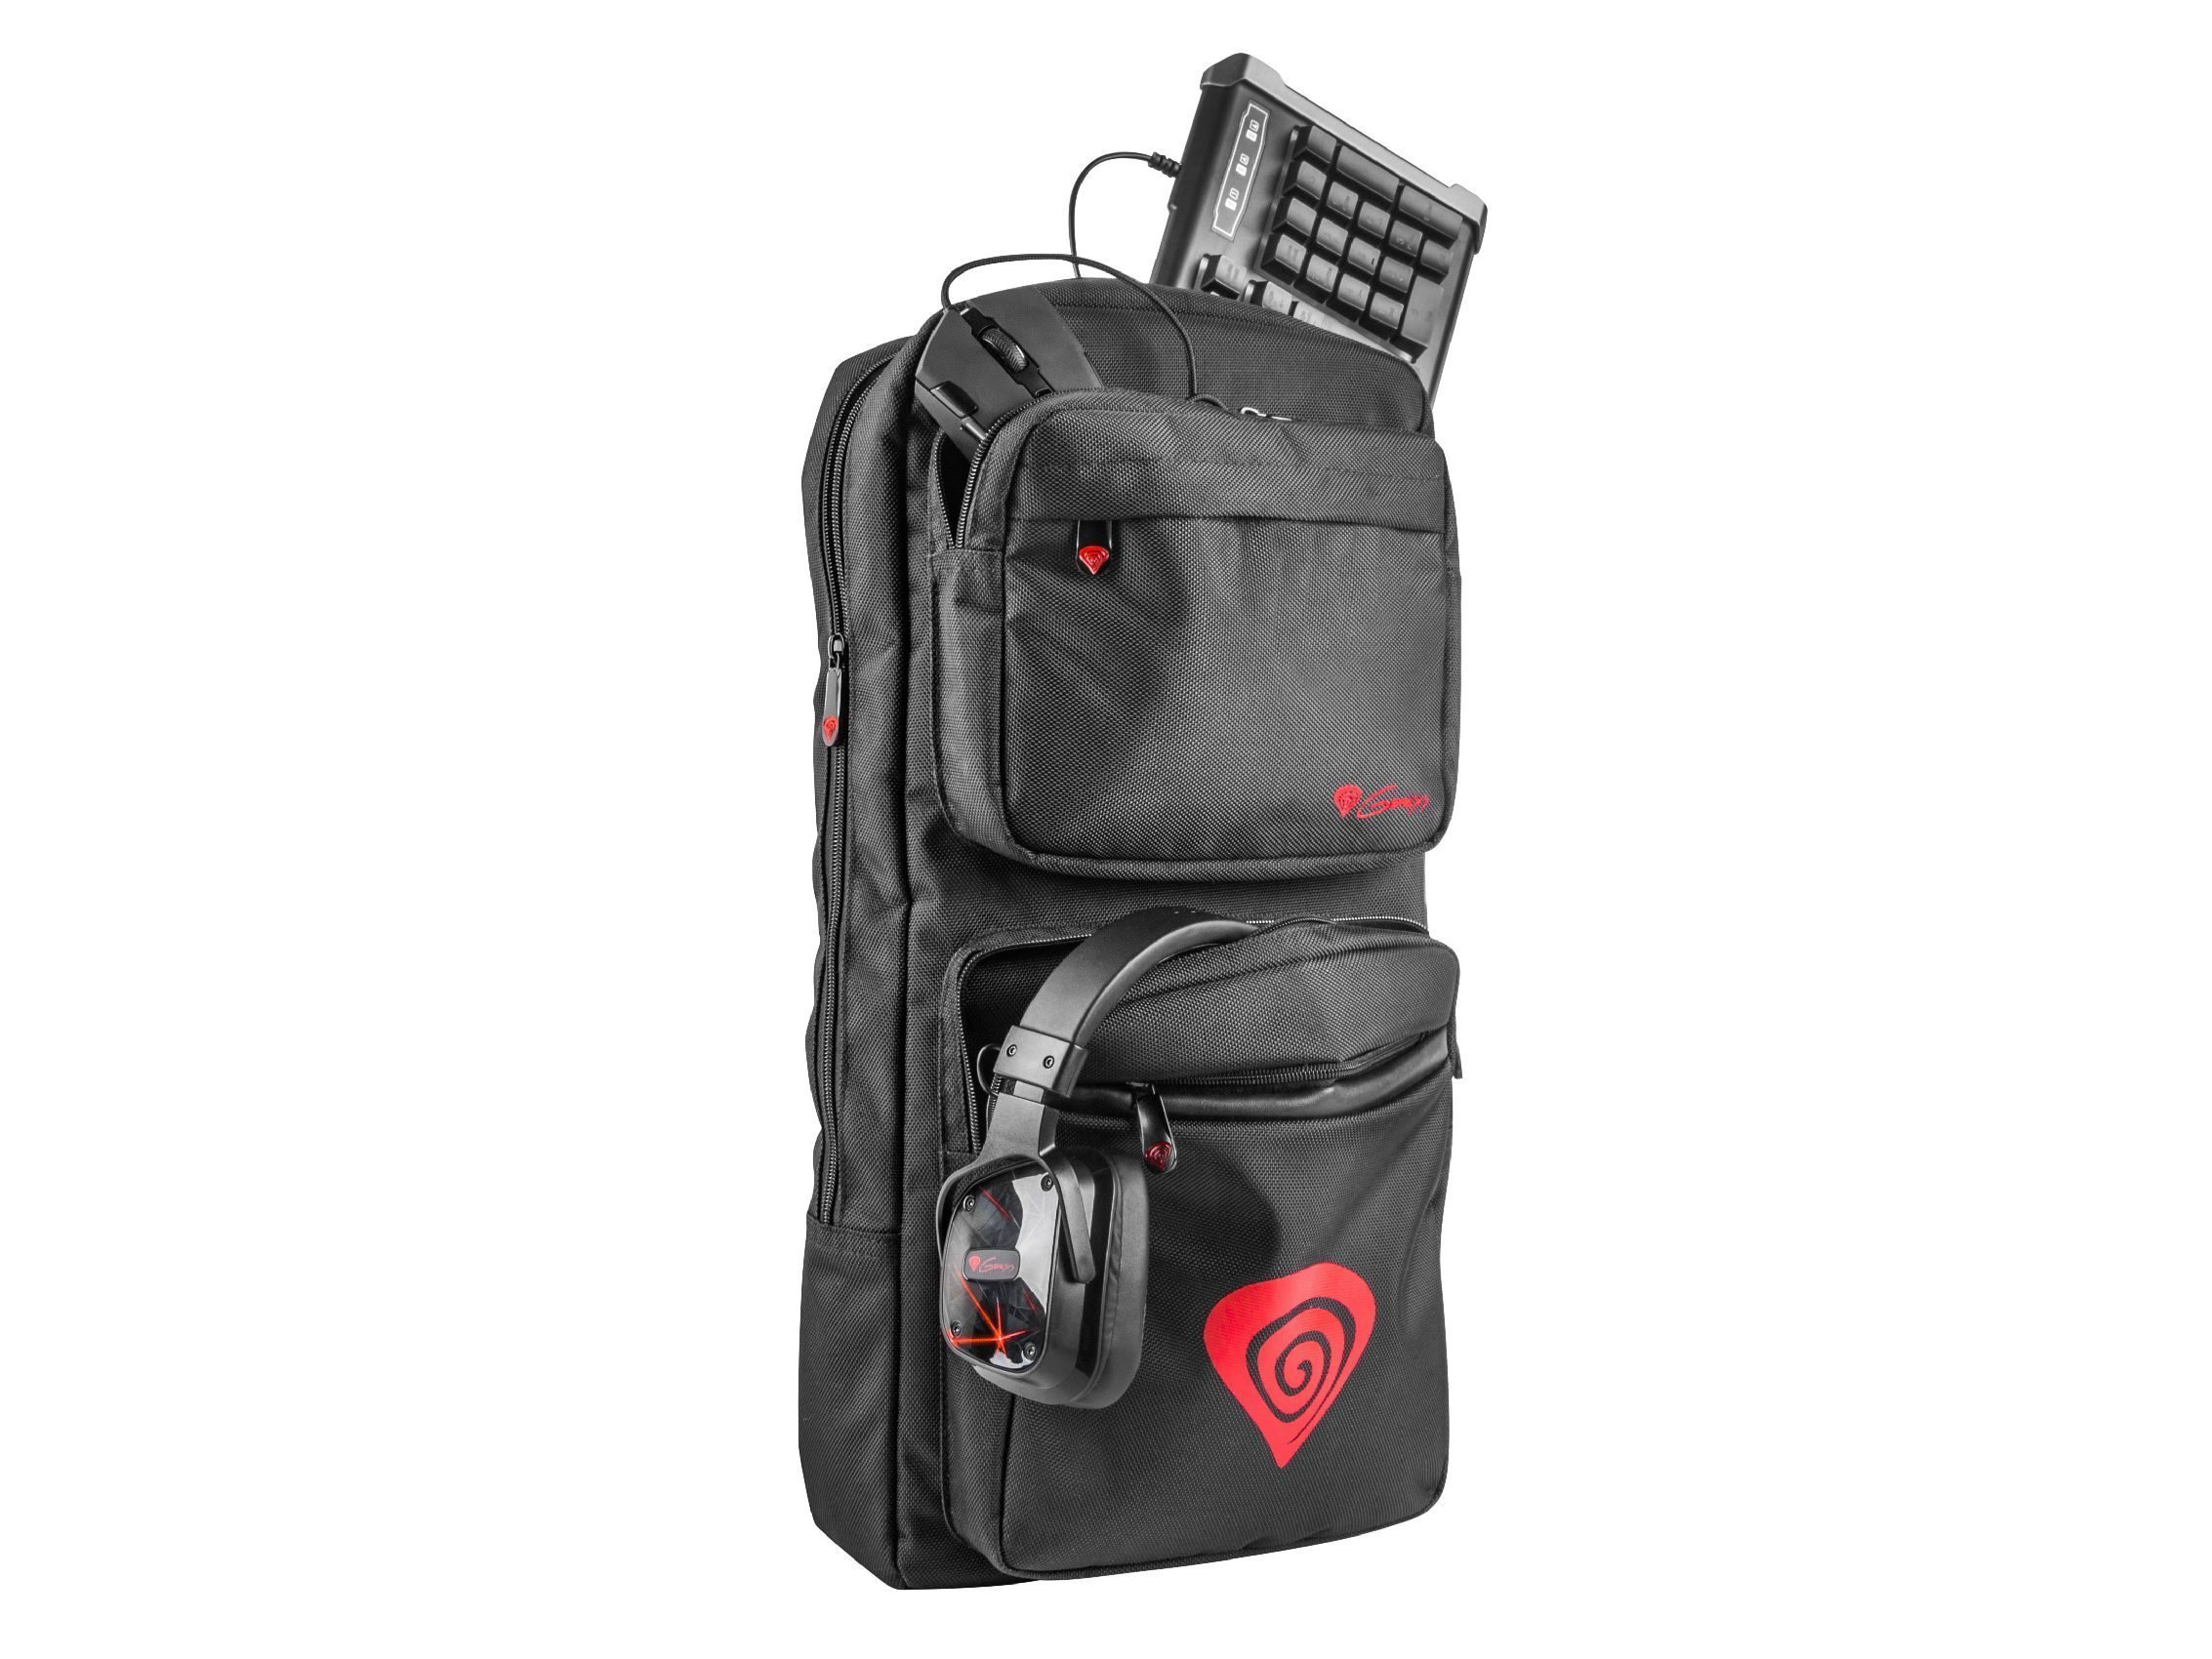 Backpack Gaming - PALLAD 300 - NBG-1070